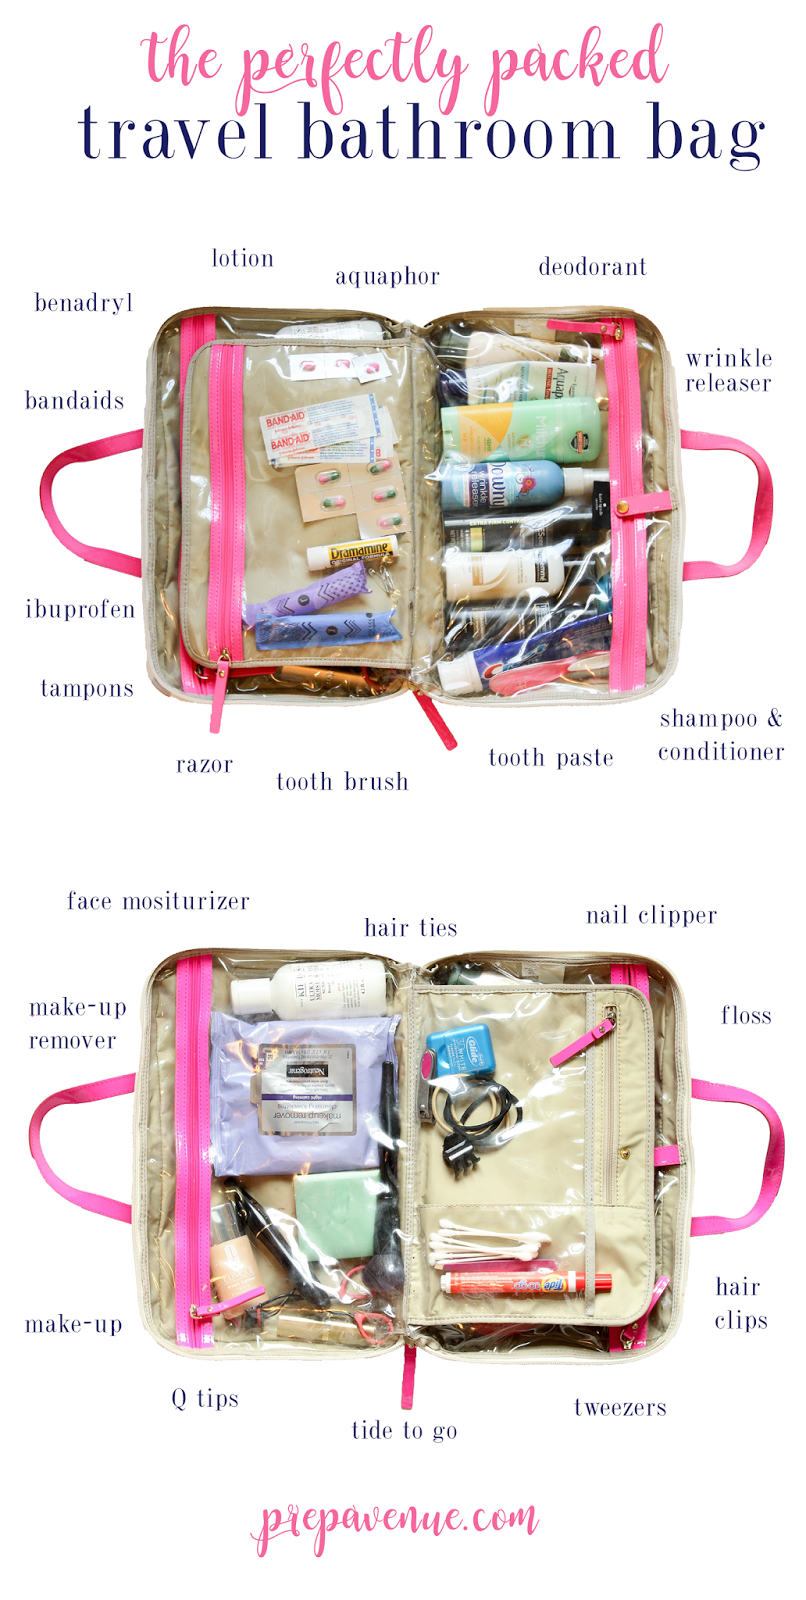 Travel Bathroom Bag | Packing tips for travel, Travel bag